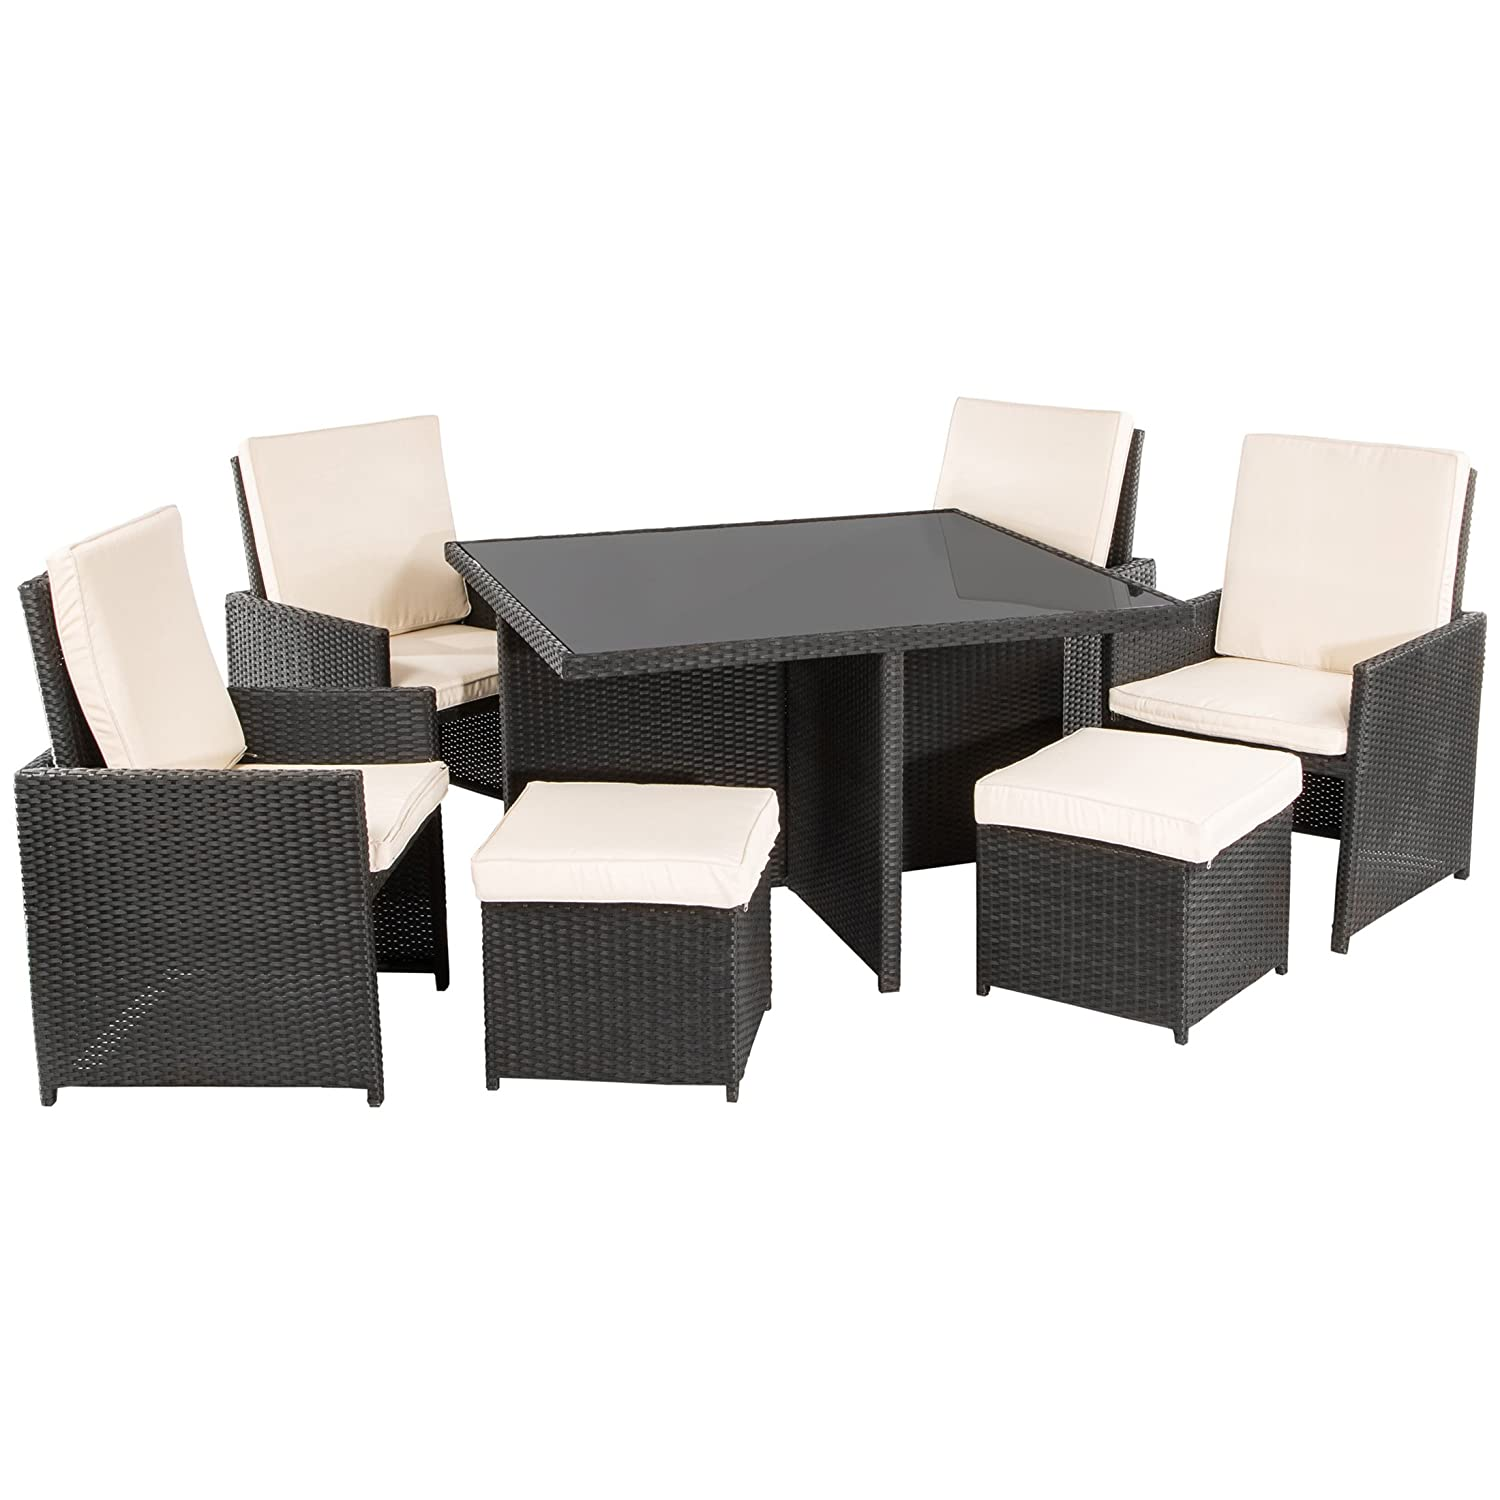 ultranatura poly rattan lounge set palma serie 9 teilig. Black Bedroom Furniture Sets. Home Design Ideas